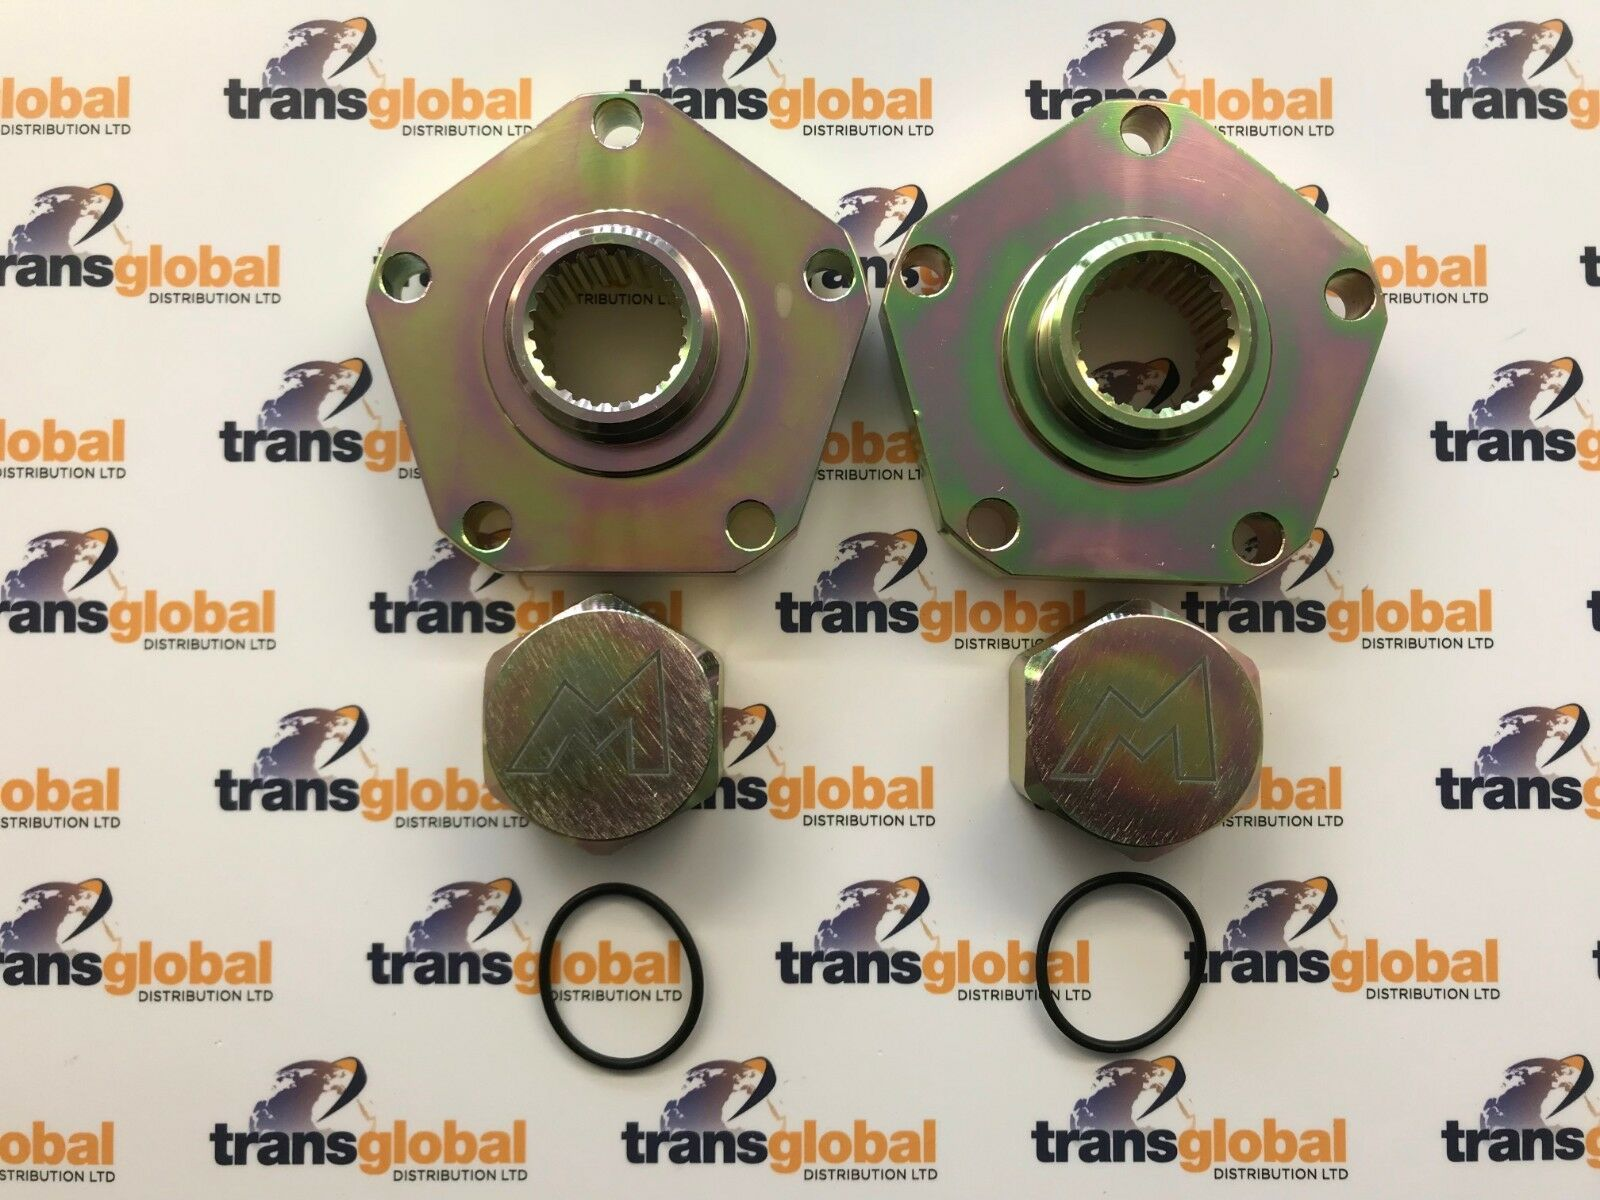 HEAVY DUTY 24 Spline Hub Drive Flange x2 for Land Rover Discovery 1 Terrafirma